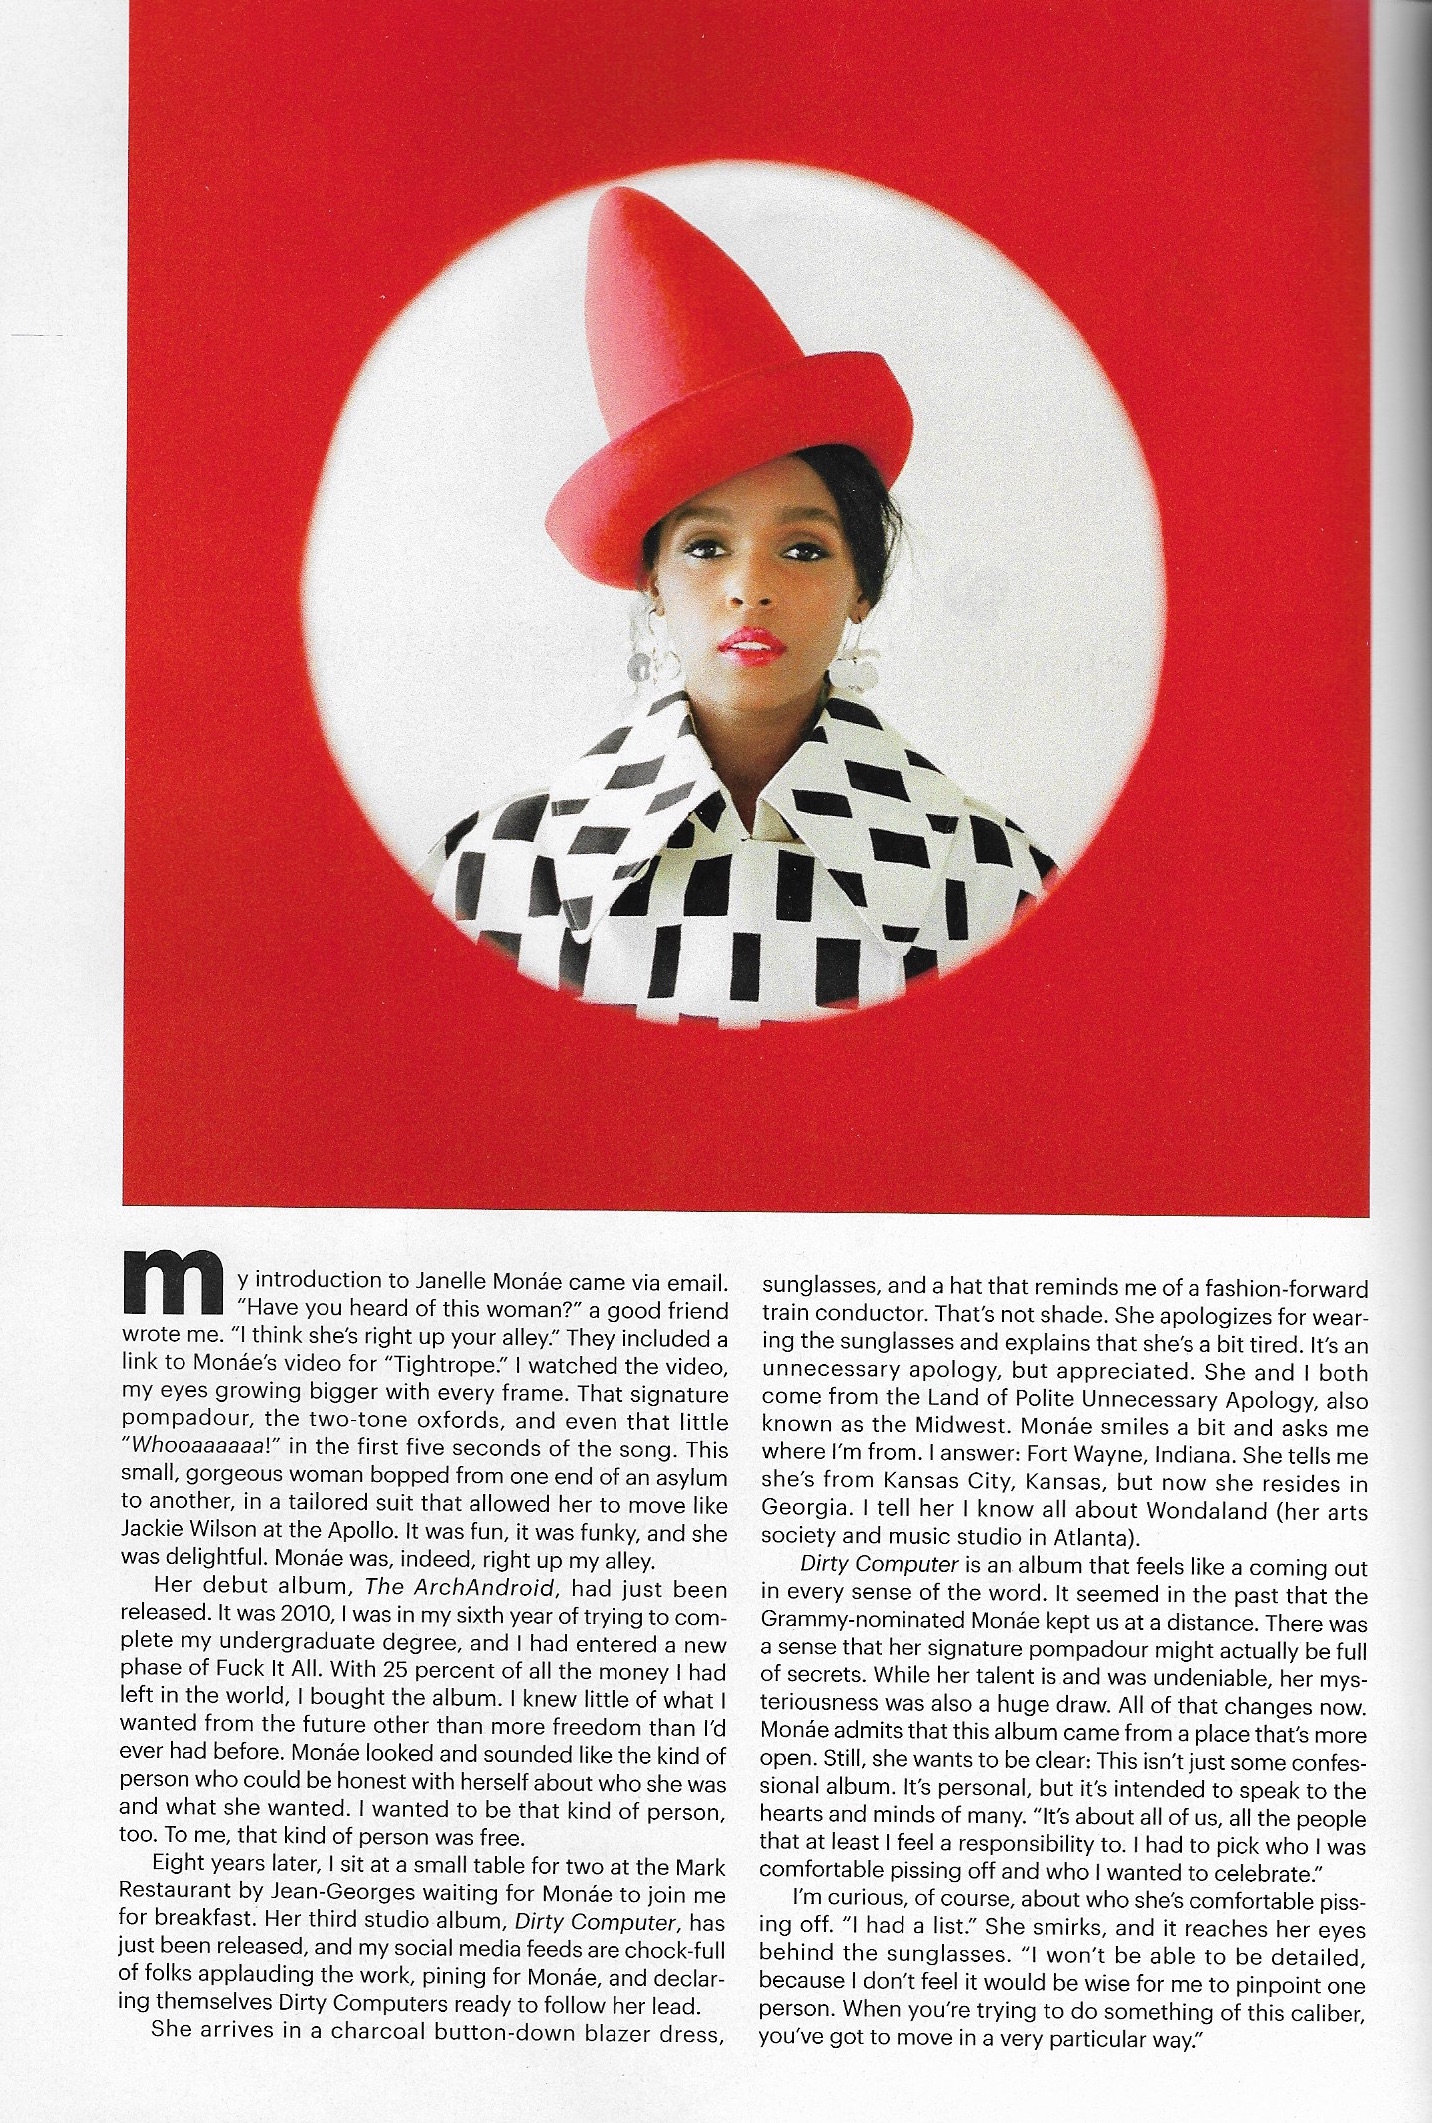 Ariana Boussard-Reifel on Janelle Monae - ALLURE July 2018